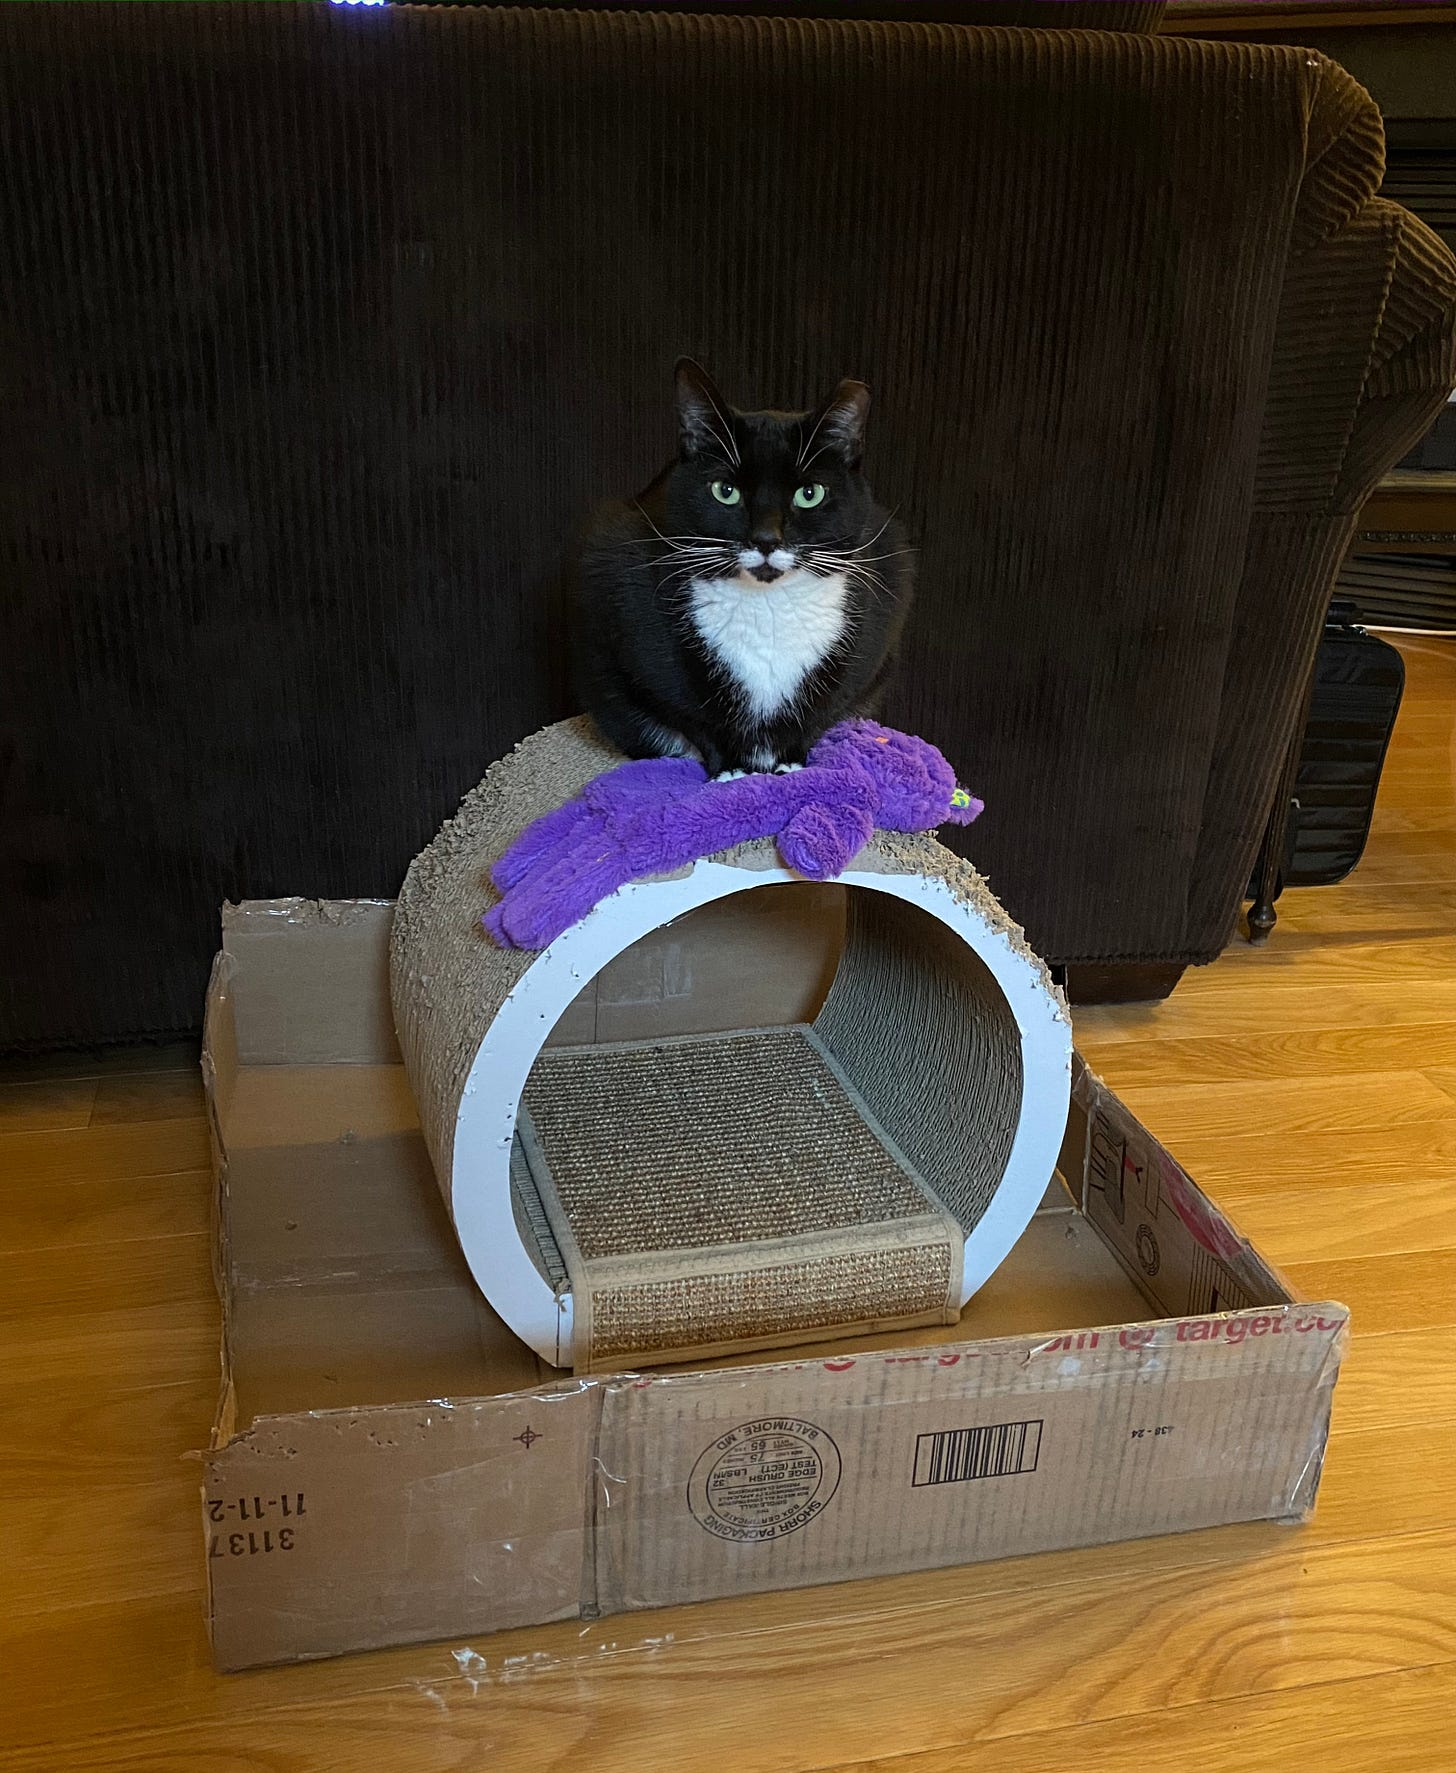 A black and white cat sits on top of a purple cat toy in the shape of a cat, on top of a round tunnel-like cat scratcher, inside a shallow, large cardboard tray.